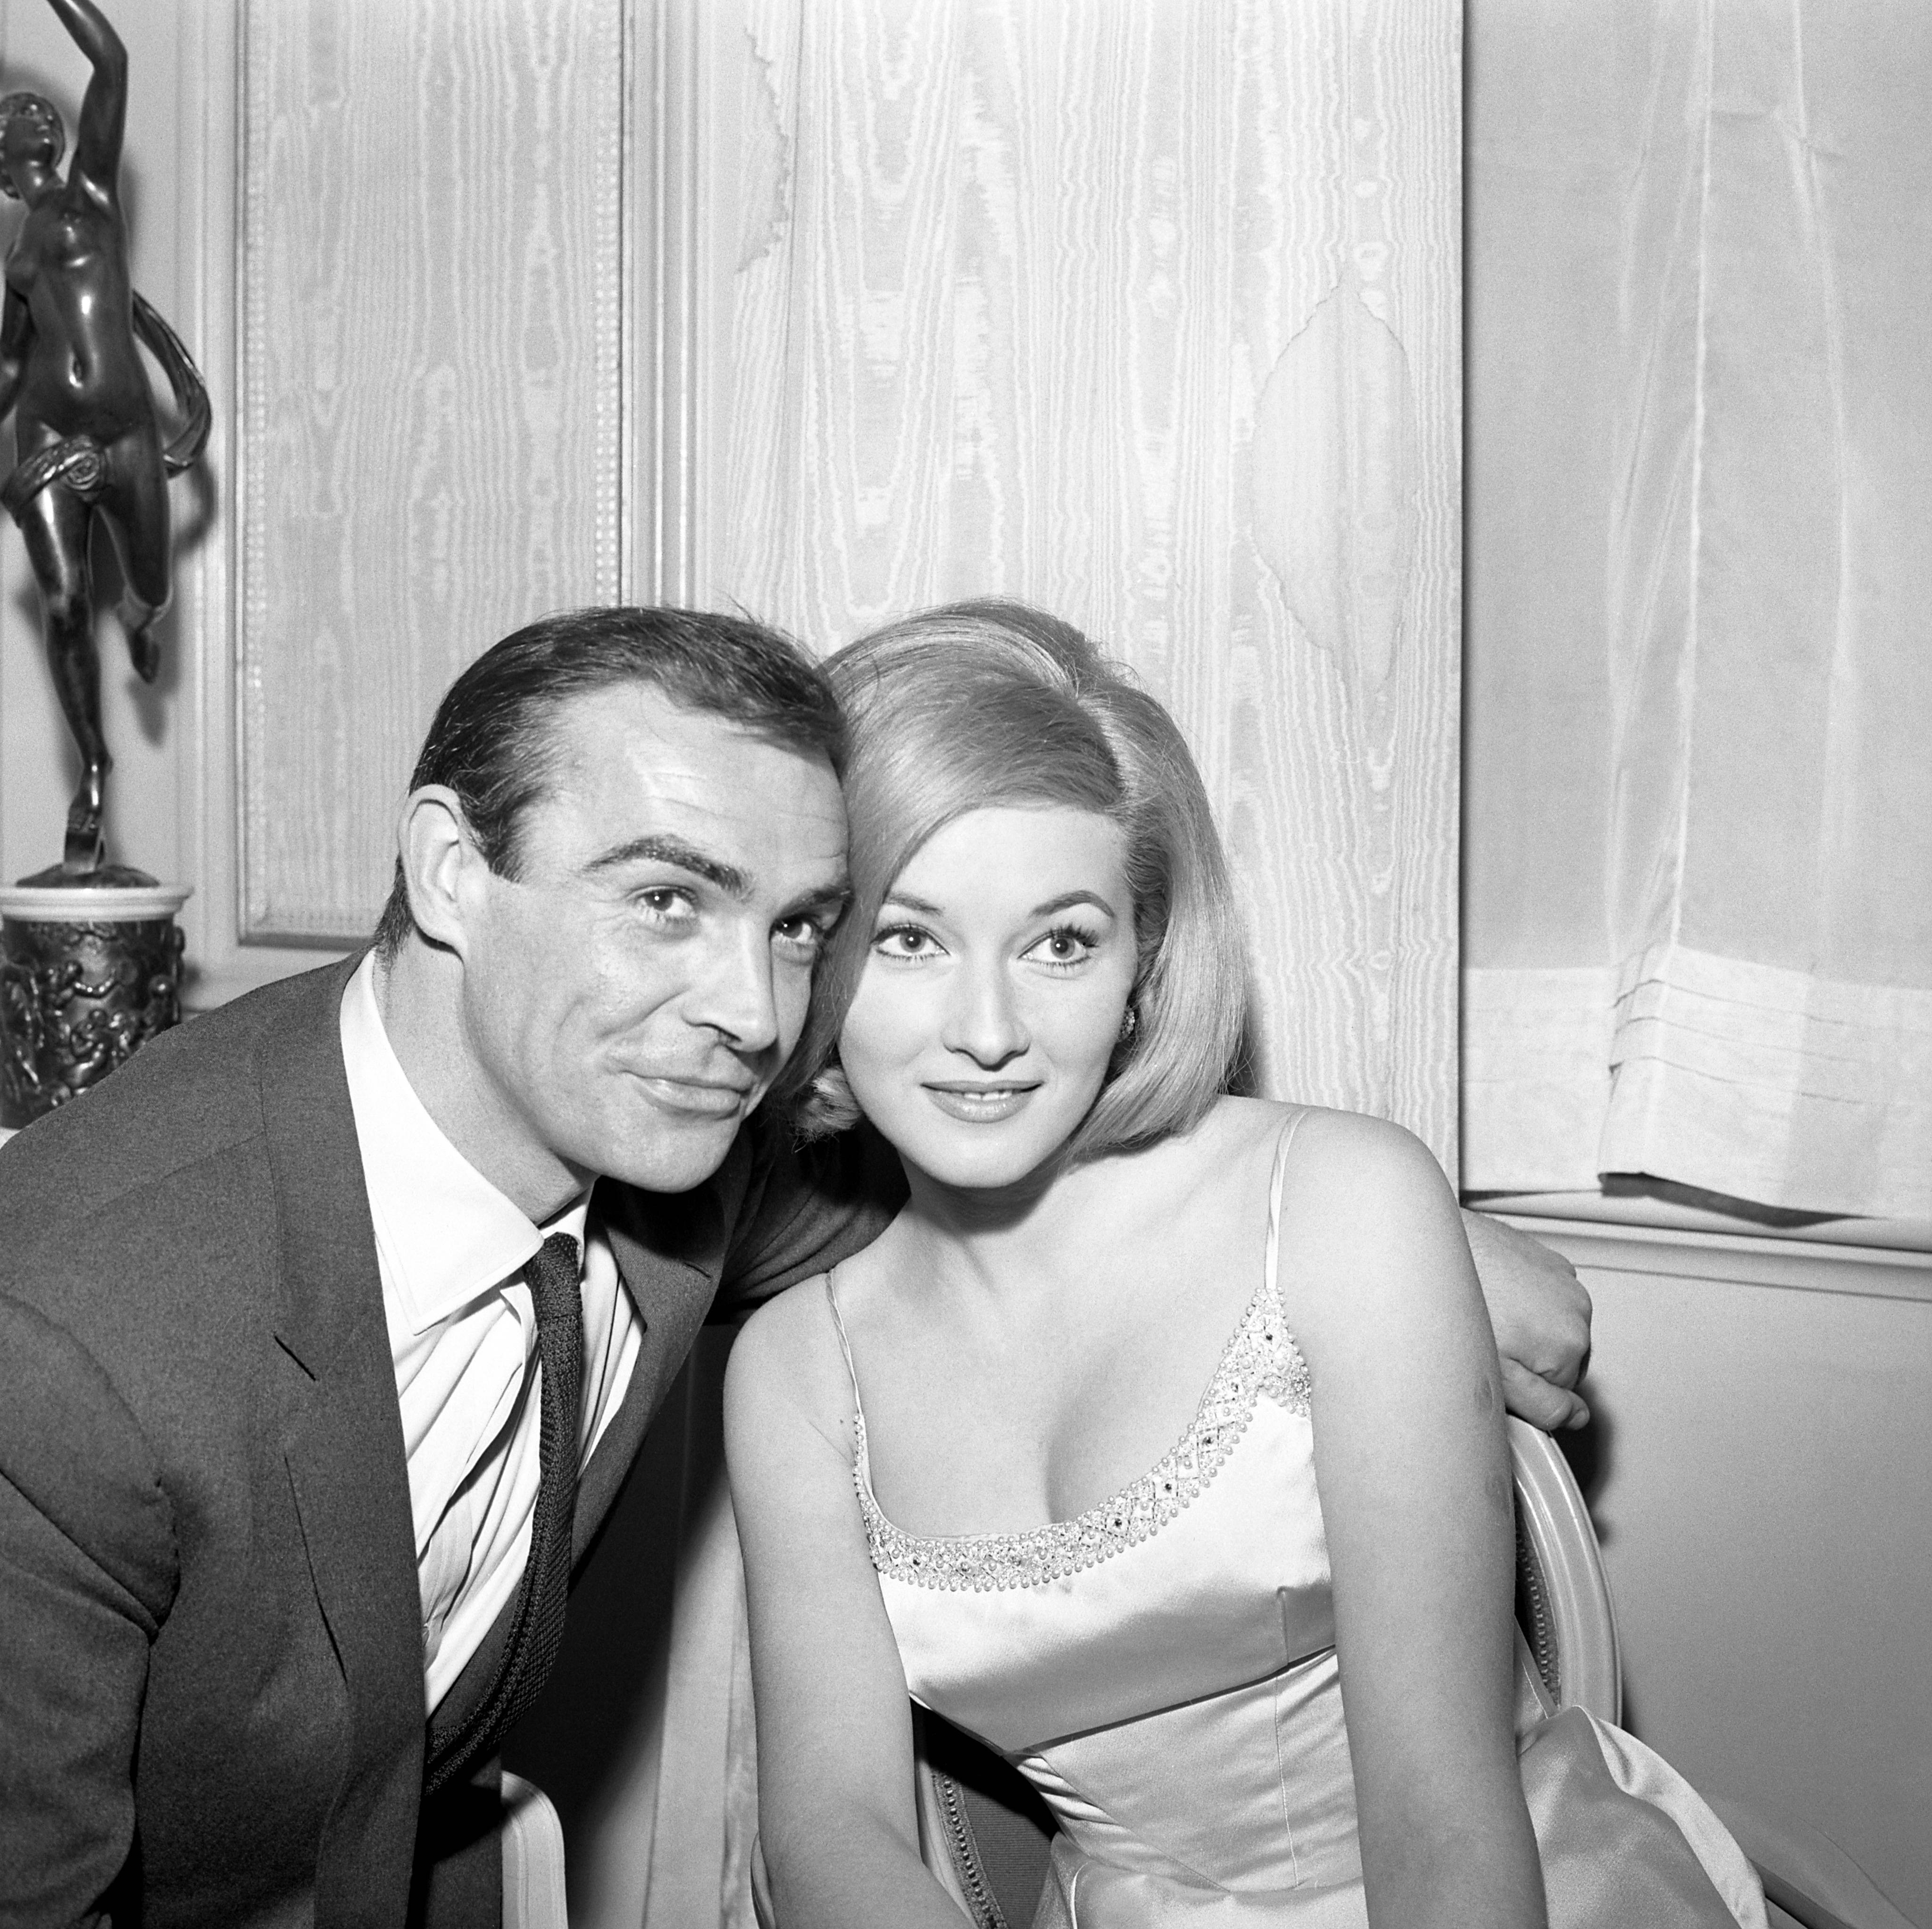 Daniela Bianchi pictured in London with Sean Connery with whom she will make her international film debut in 'From Russia, With Love'- an Ian Fleming spy thriller again featuring British Secret Service agent James Bond 007.